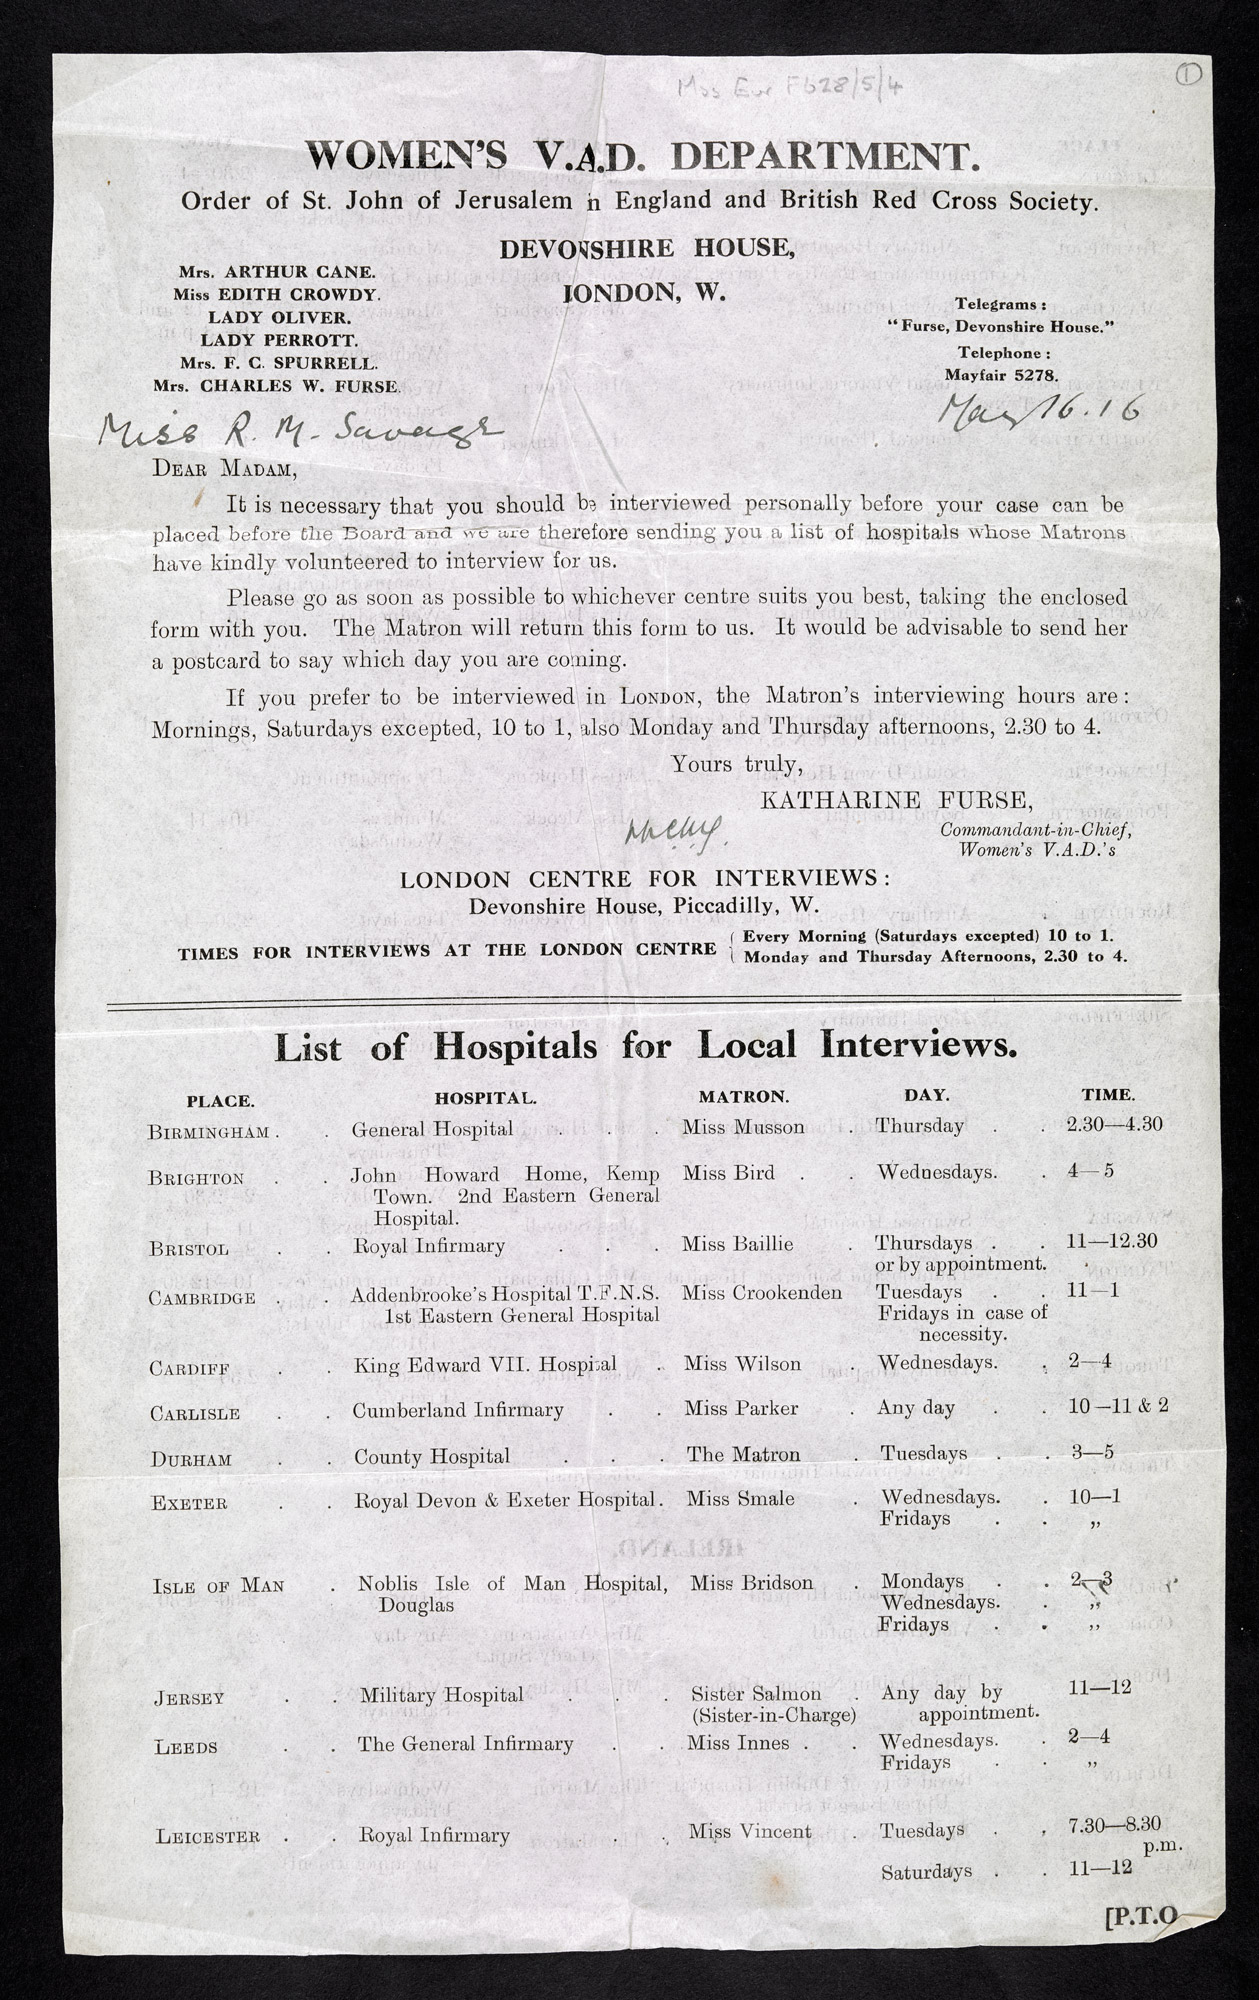 Documents of Rose Mary Savage. Invite to interview for VAD nursing.